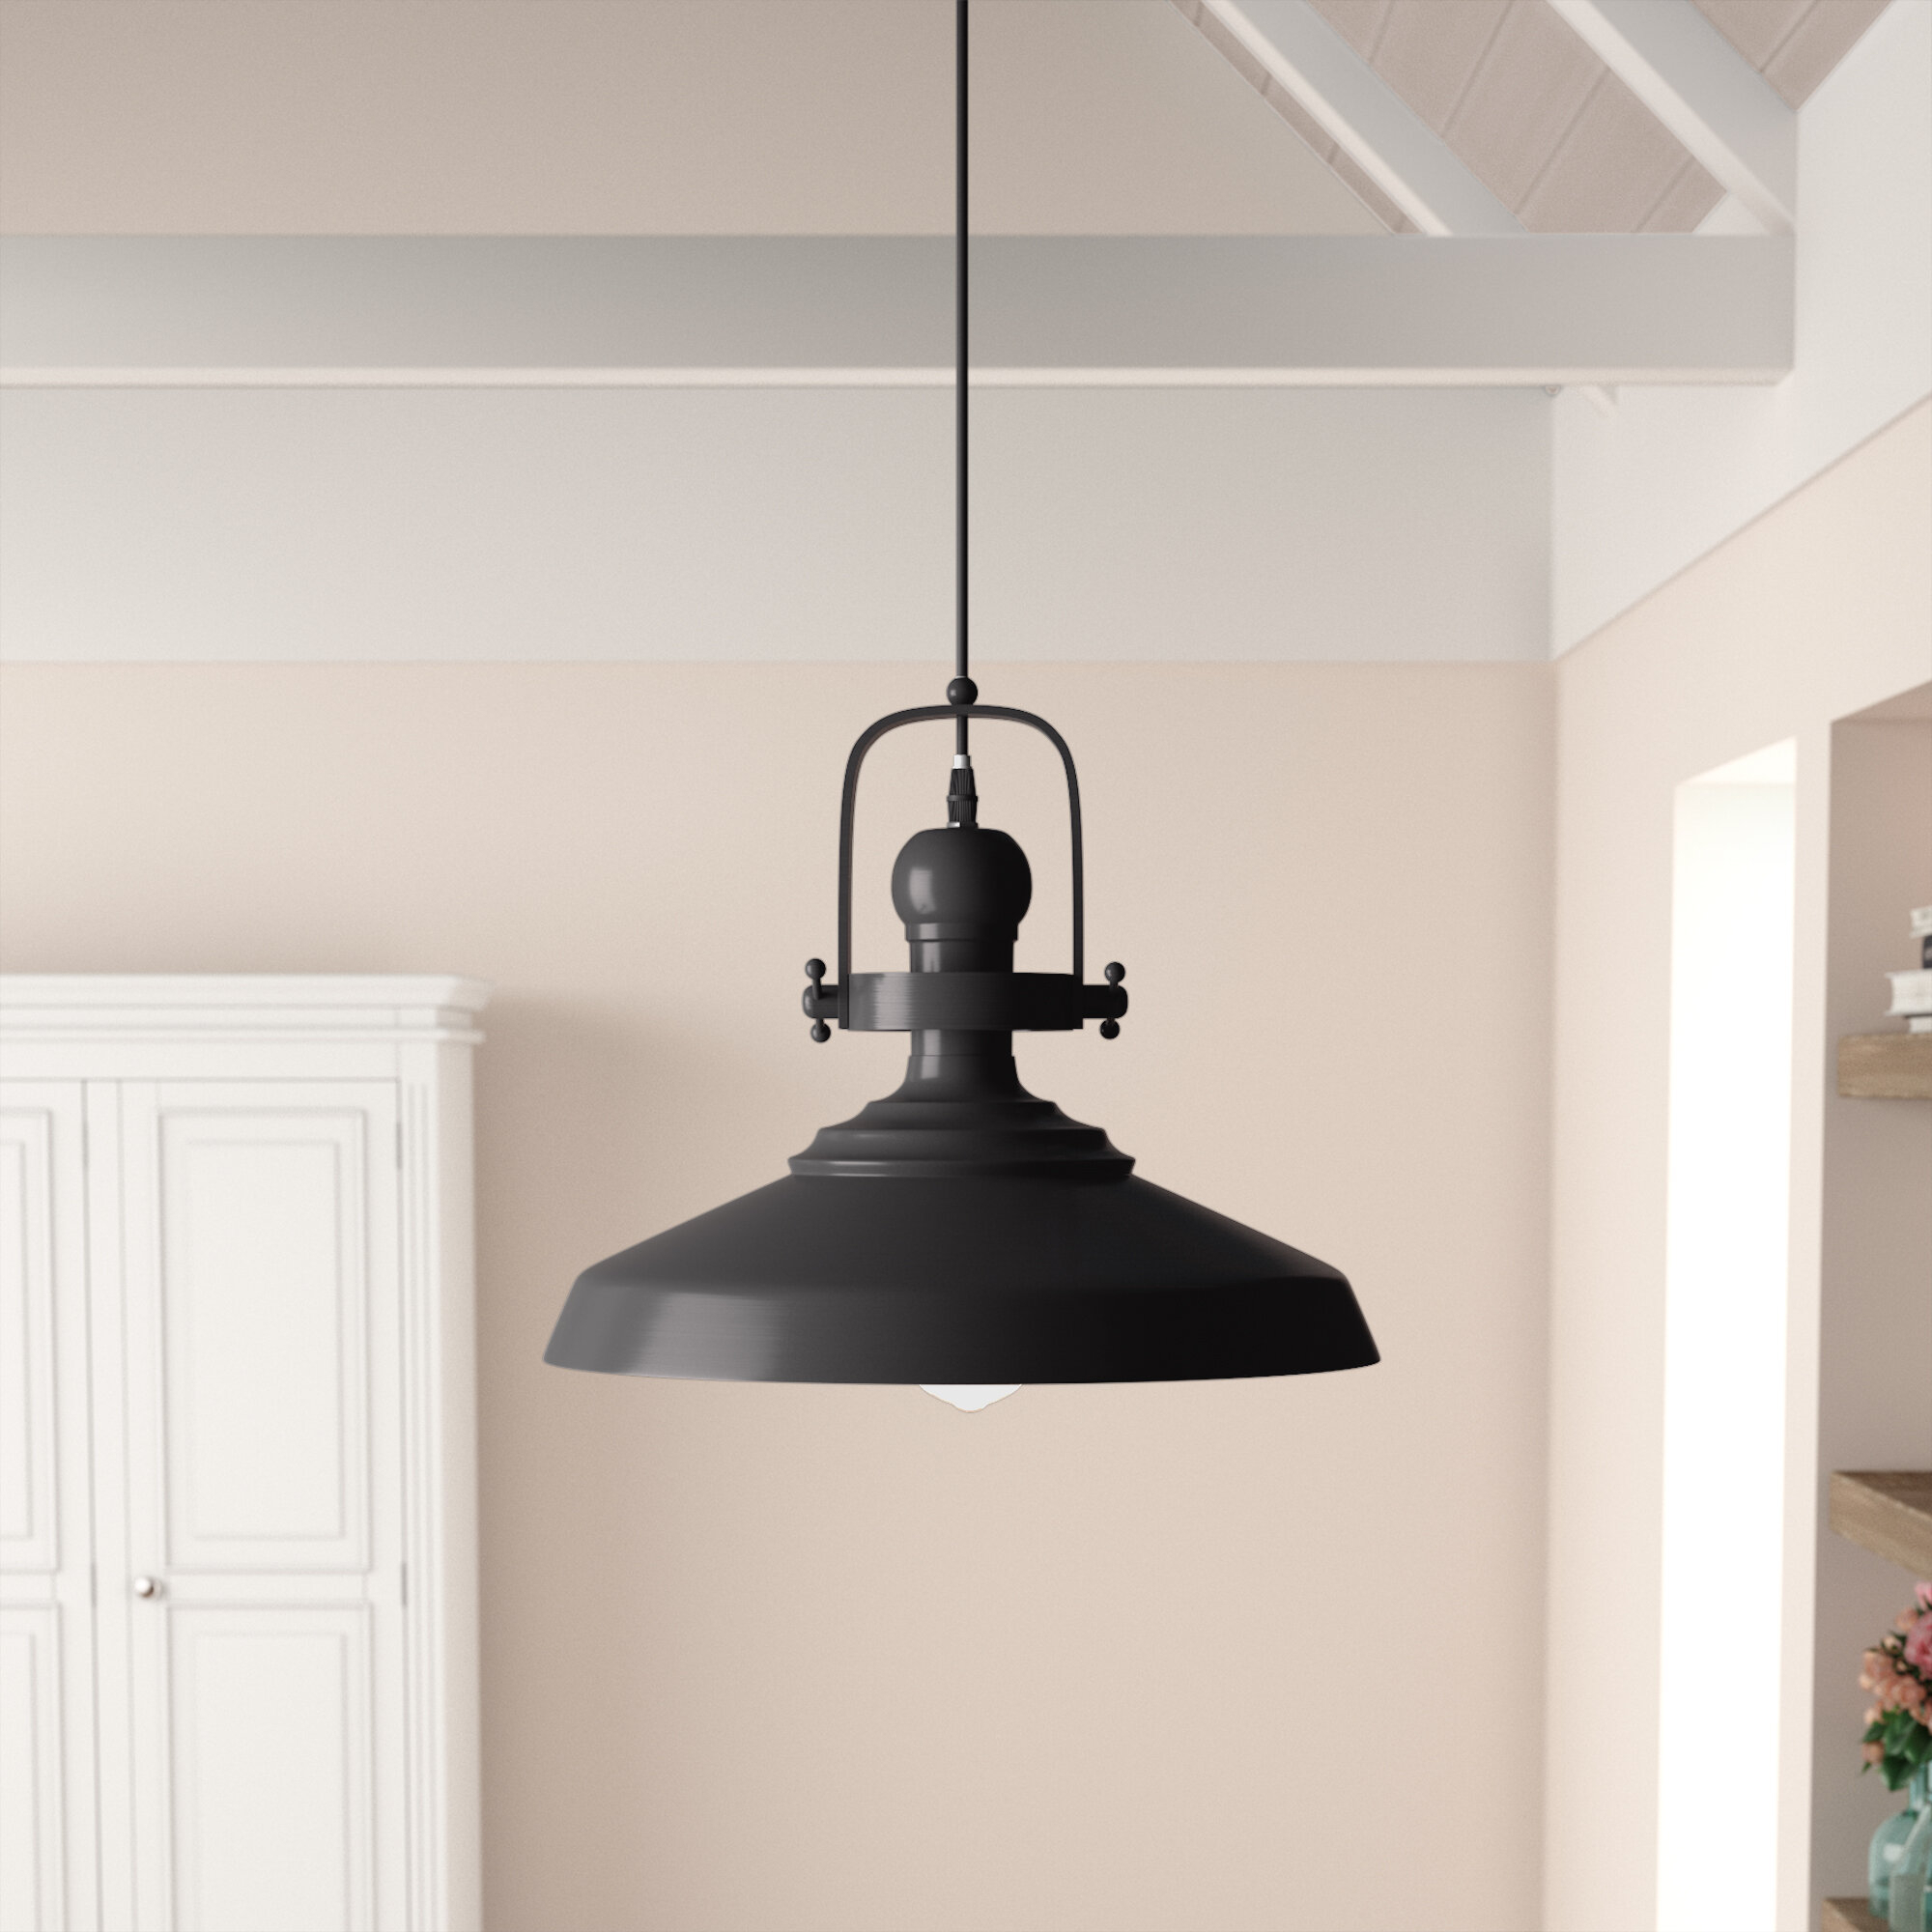 Estelle 1 Light Single Dome Pendant For Southlake 1 Light Single Dome Pendants (Gallery 30 of 30)